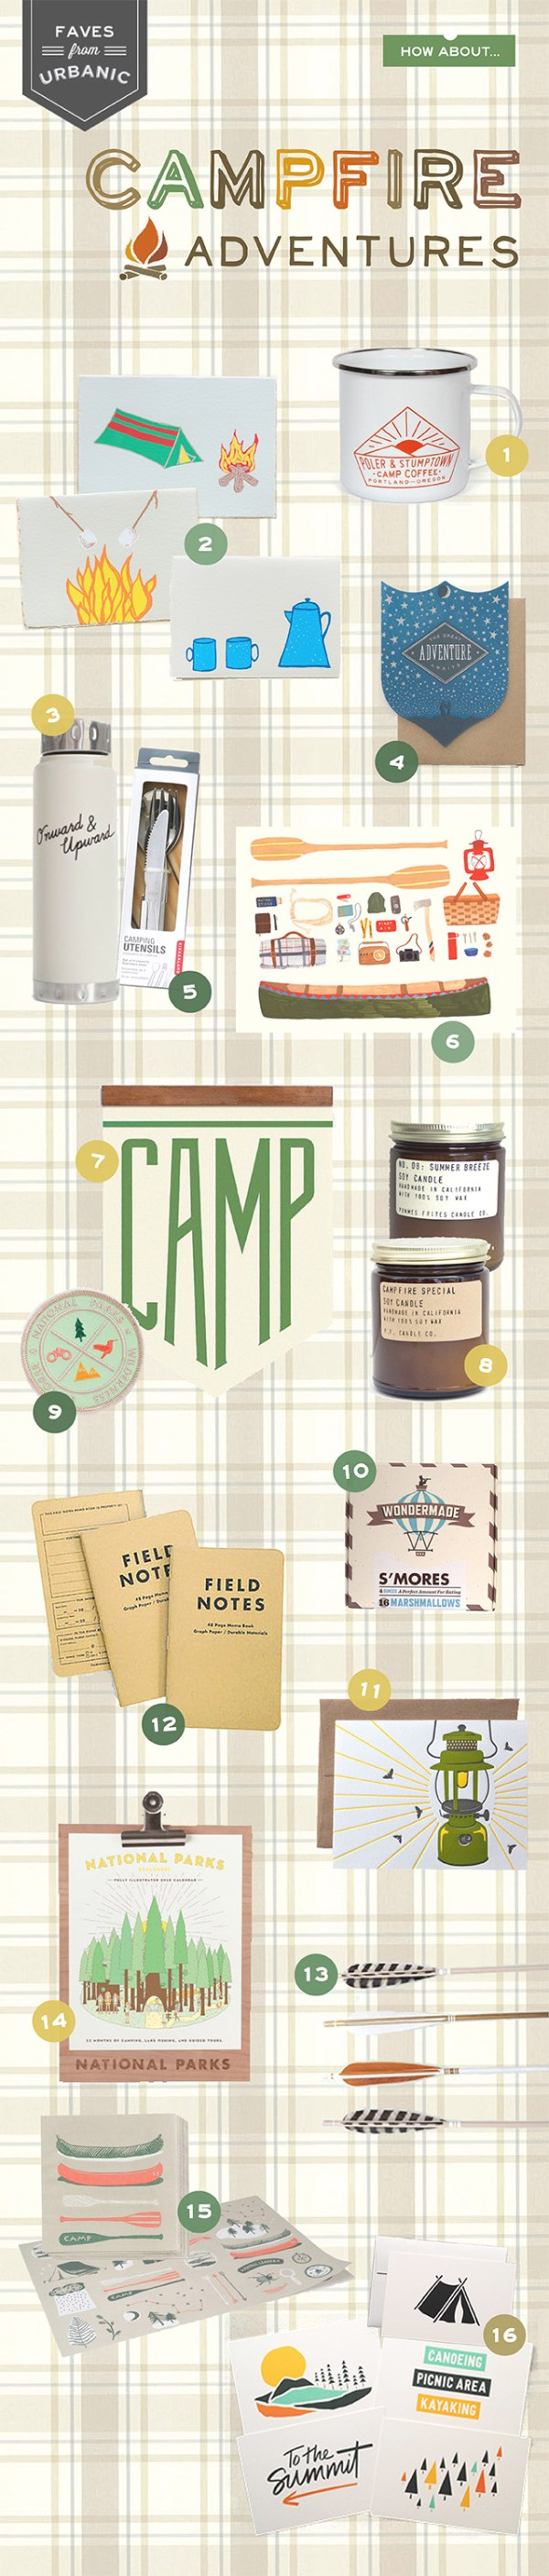 camp final 600x2815 Urbanic Faves | Campfire Adventures